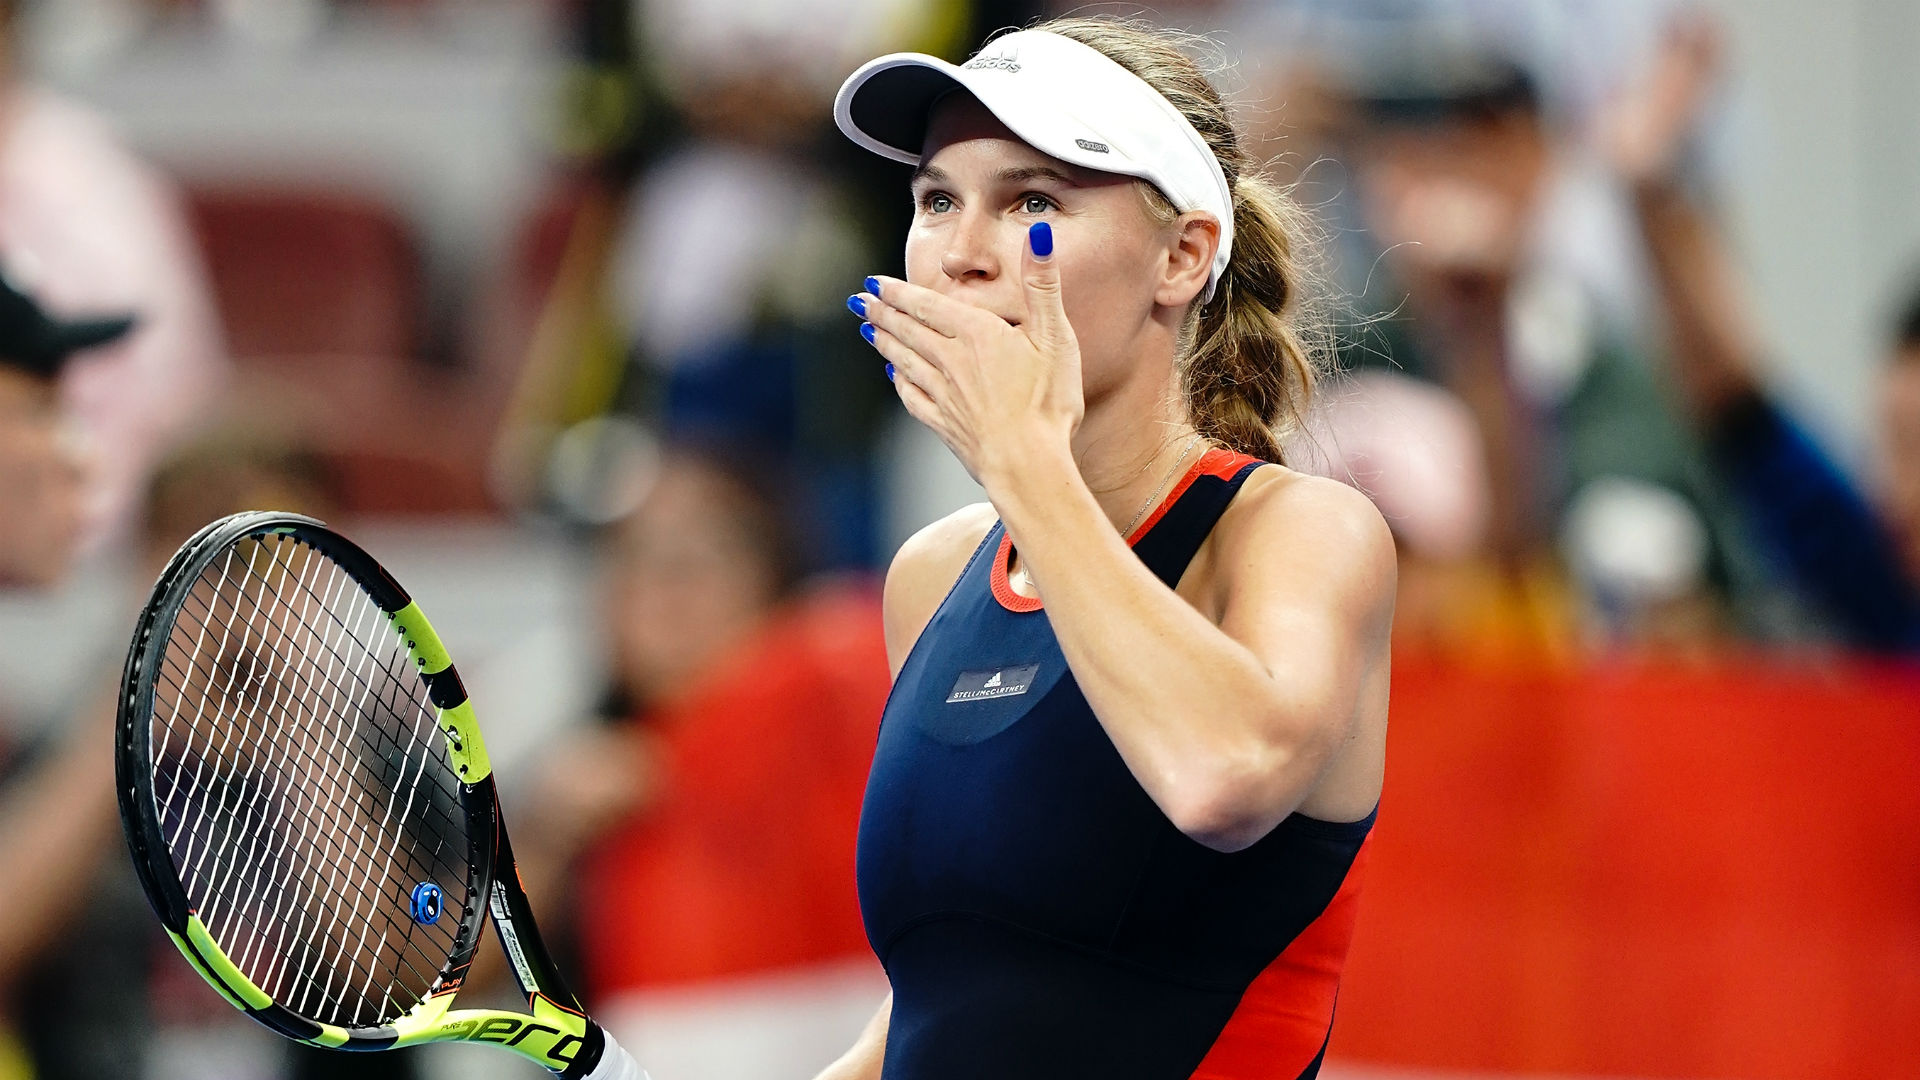 There will be no home champion at the China Open after Caroline Wozniacki overcame Wang Qiang in straight sets on Saturday.